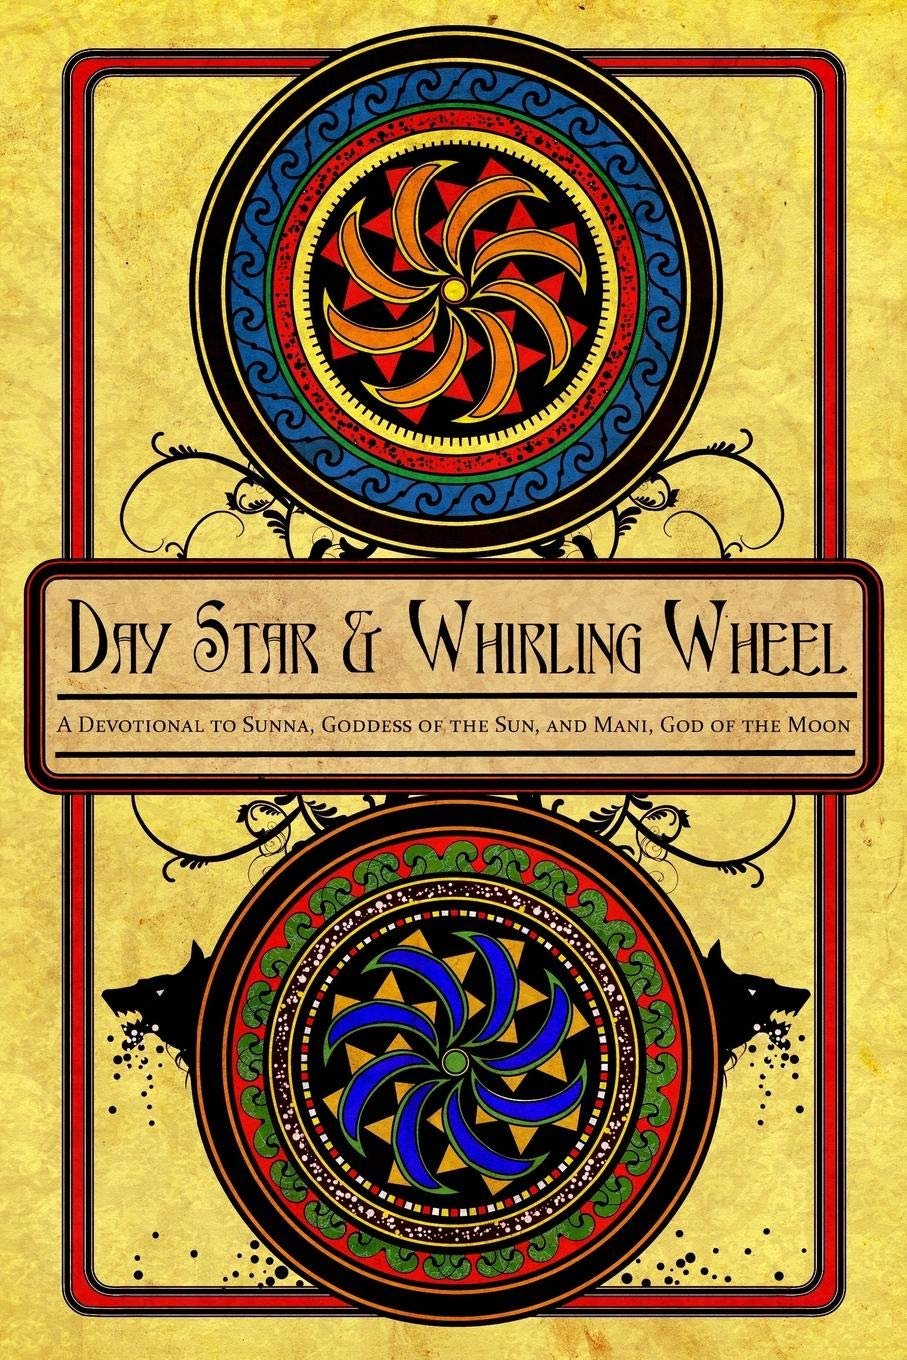 Day Star and Whirling Wheel cover